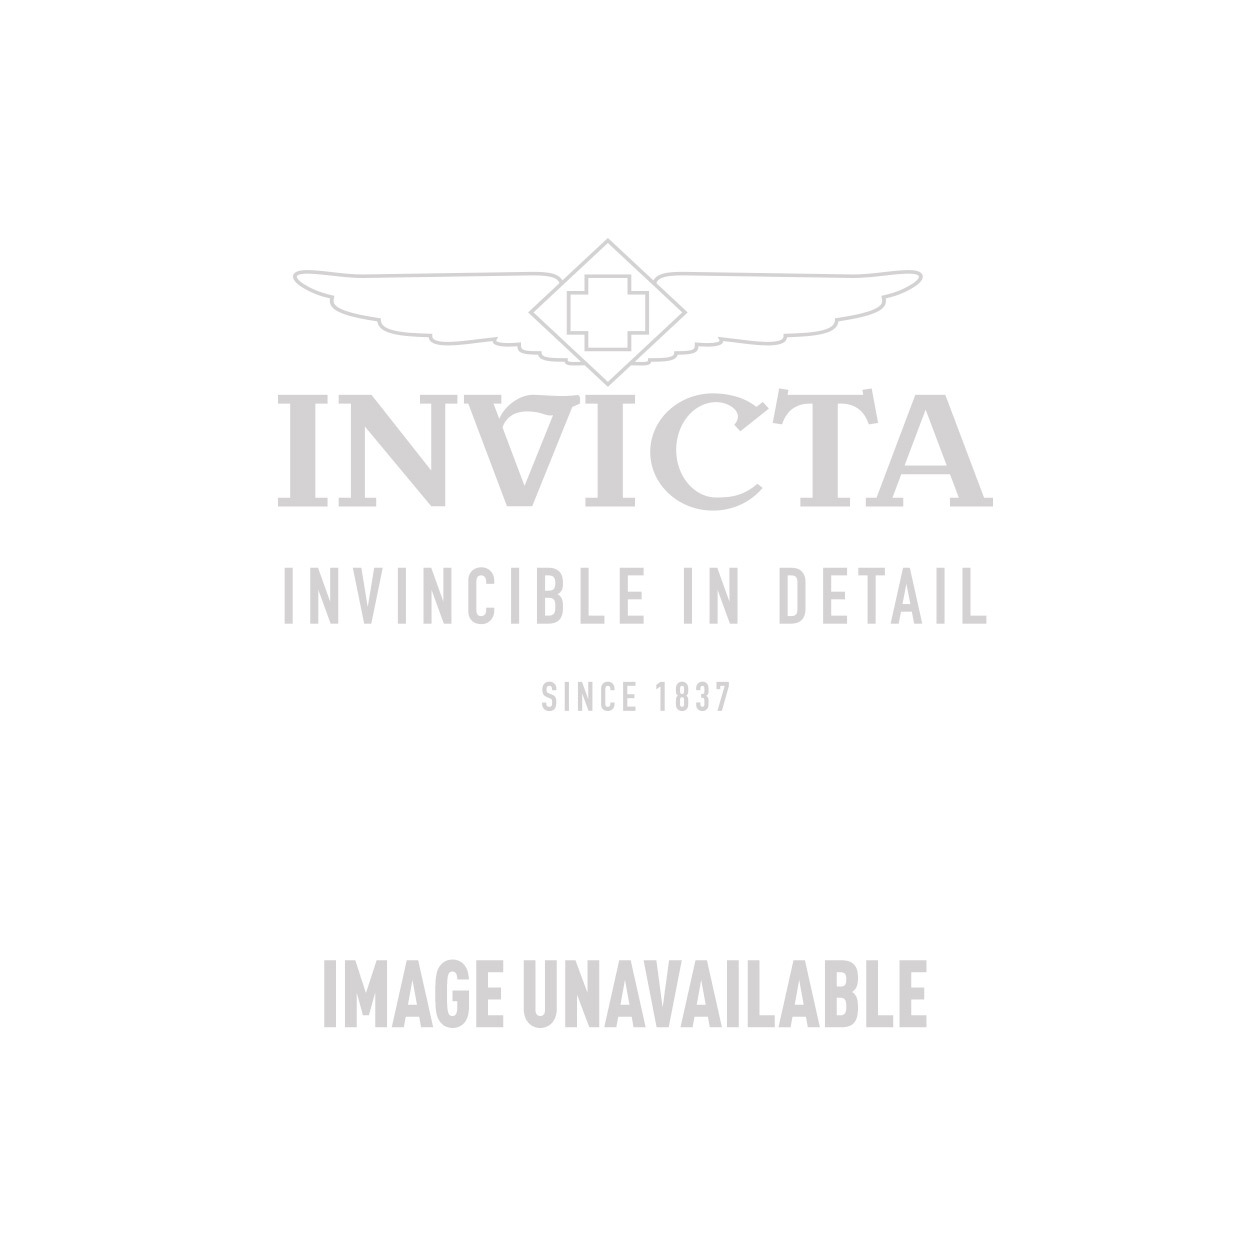 Invicta Bolt Swiss Made Quartz Watch - Gold, Black case with Gold tone Stainless Steel band - Model 17163